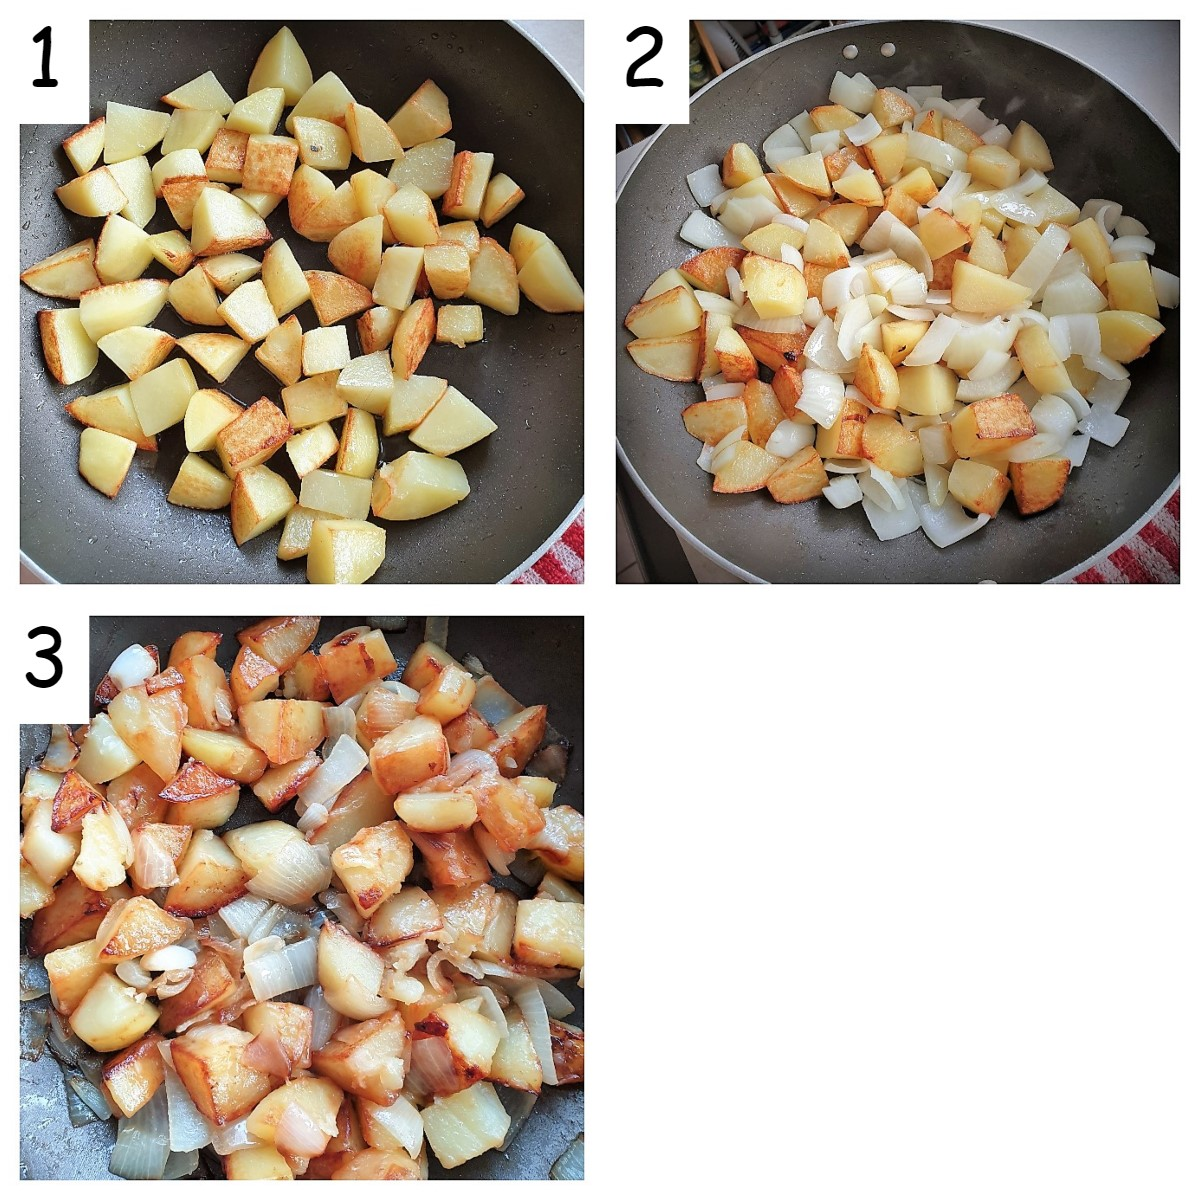 Three images showing steps for making saute potatoes.